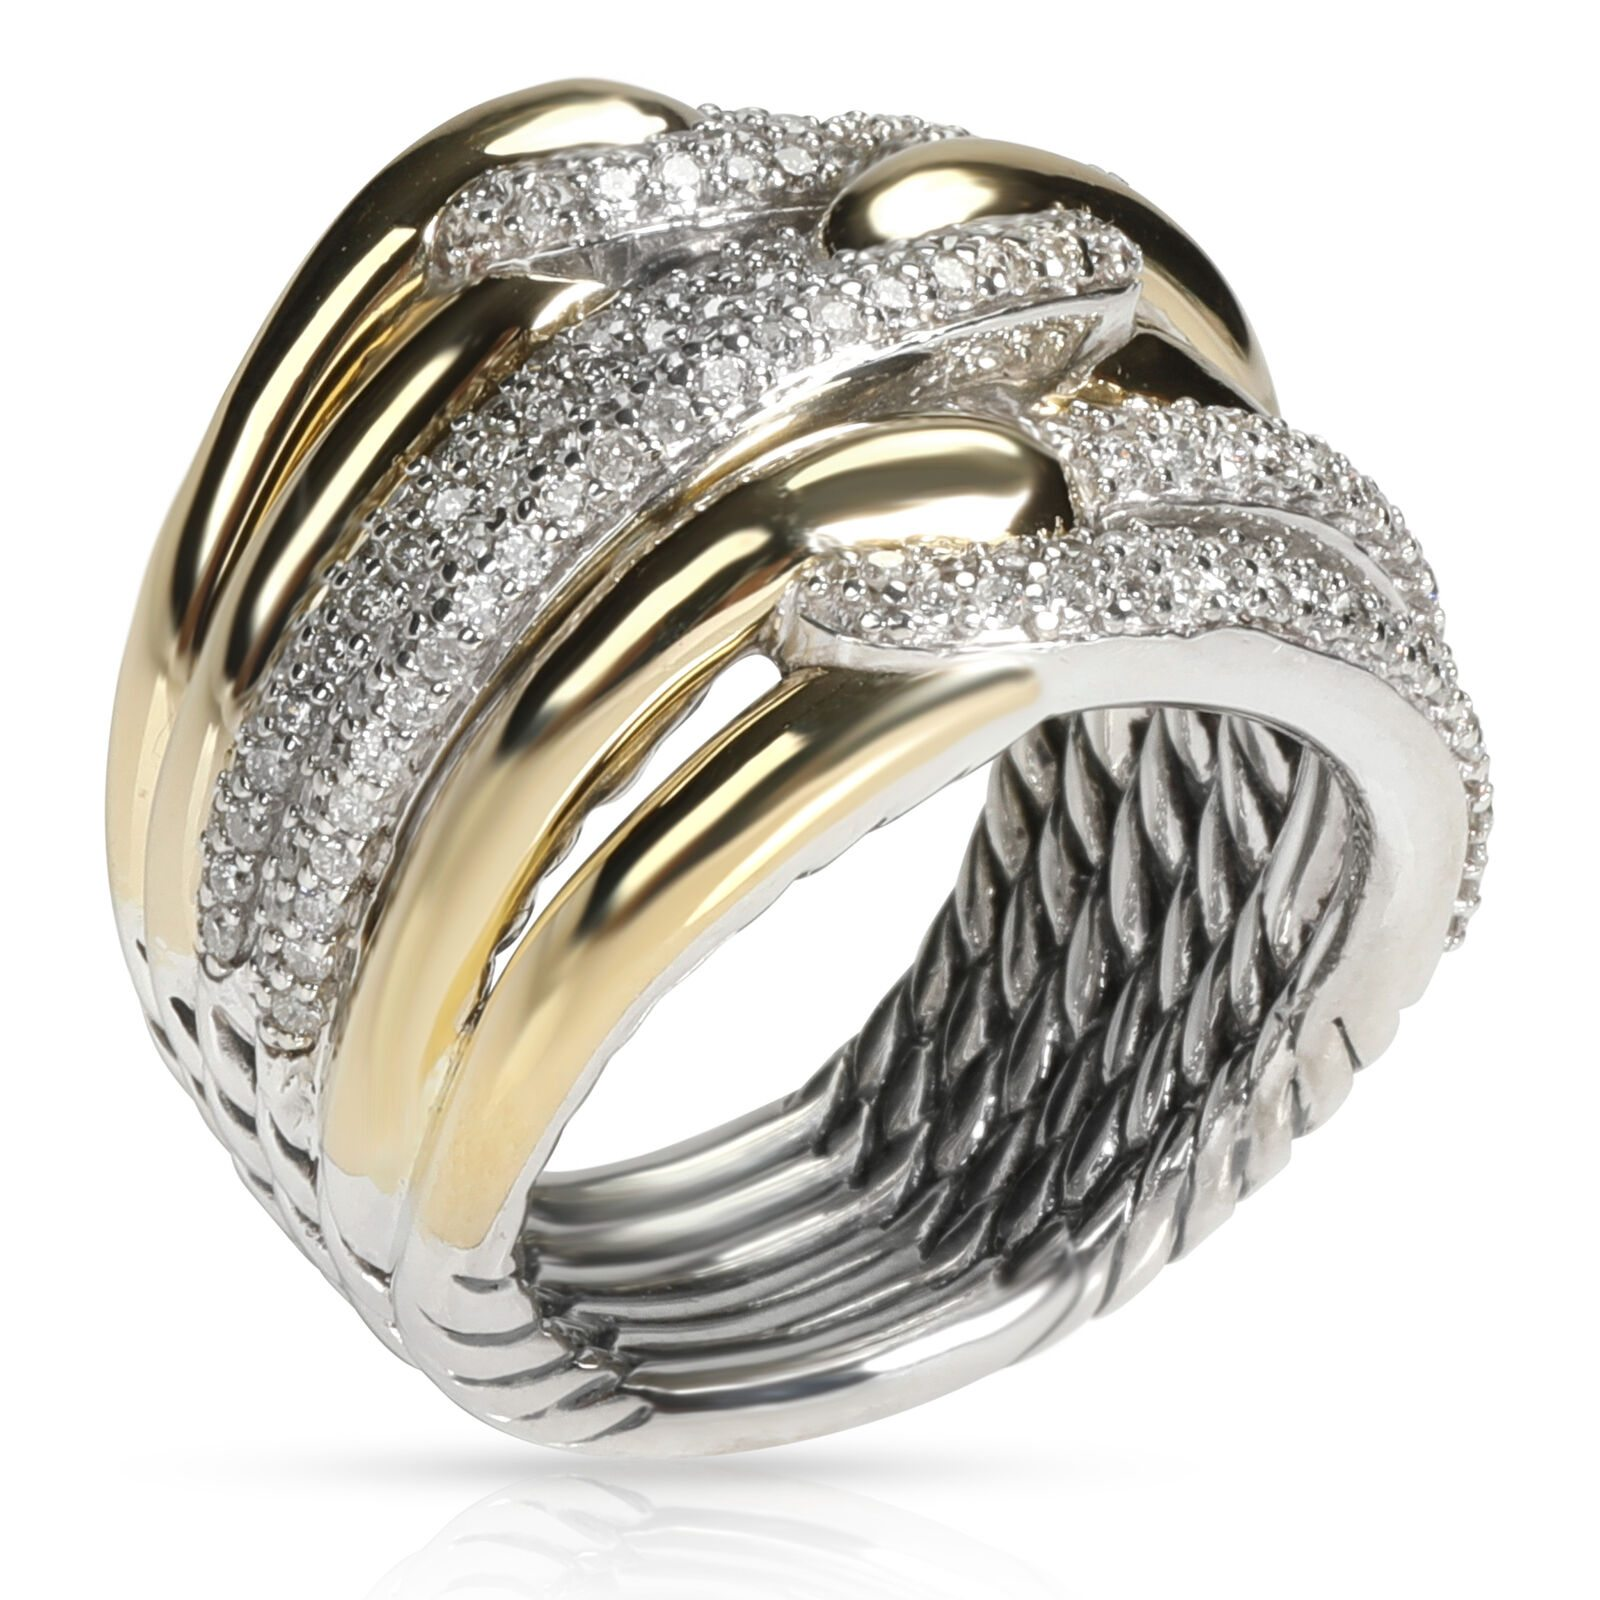 Image of David Yurman Labyrinth Diamond Ring in 18K Yellow Gold/Sterling Silver 1 CTW